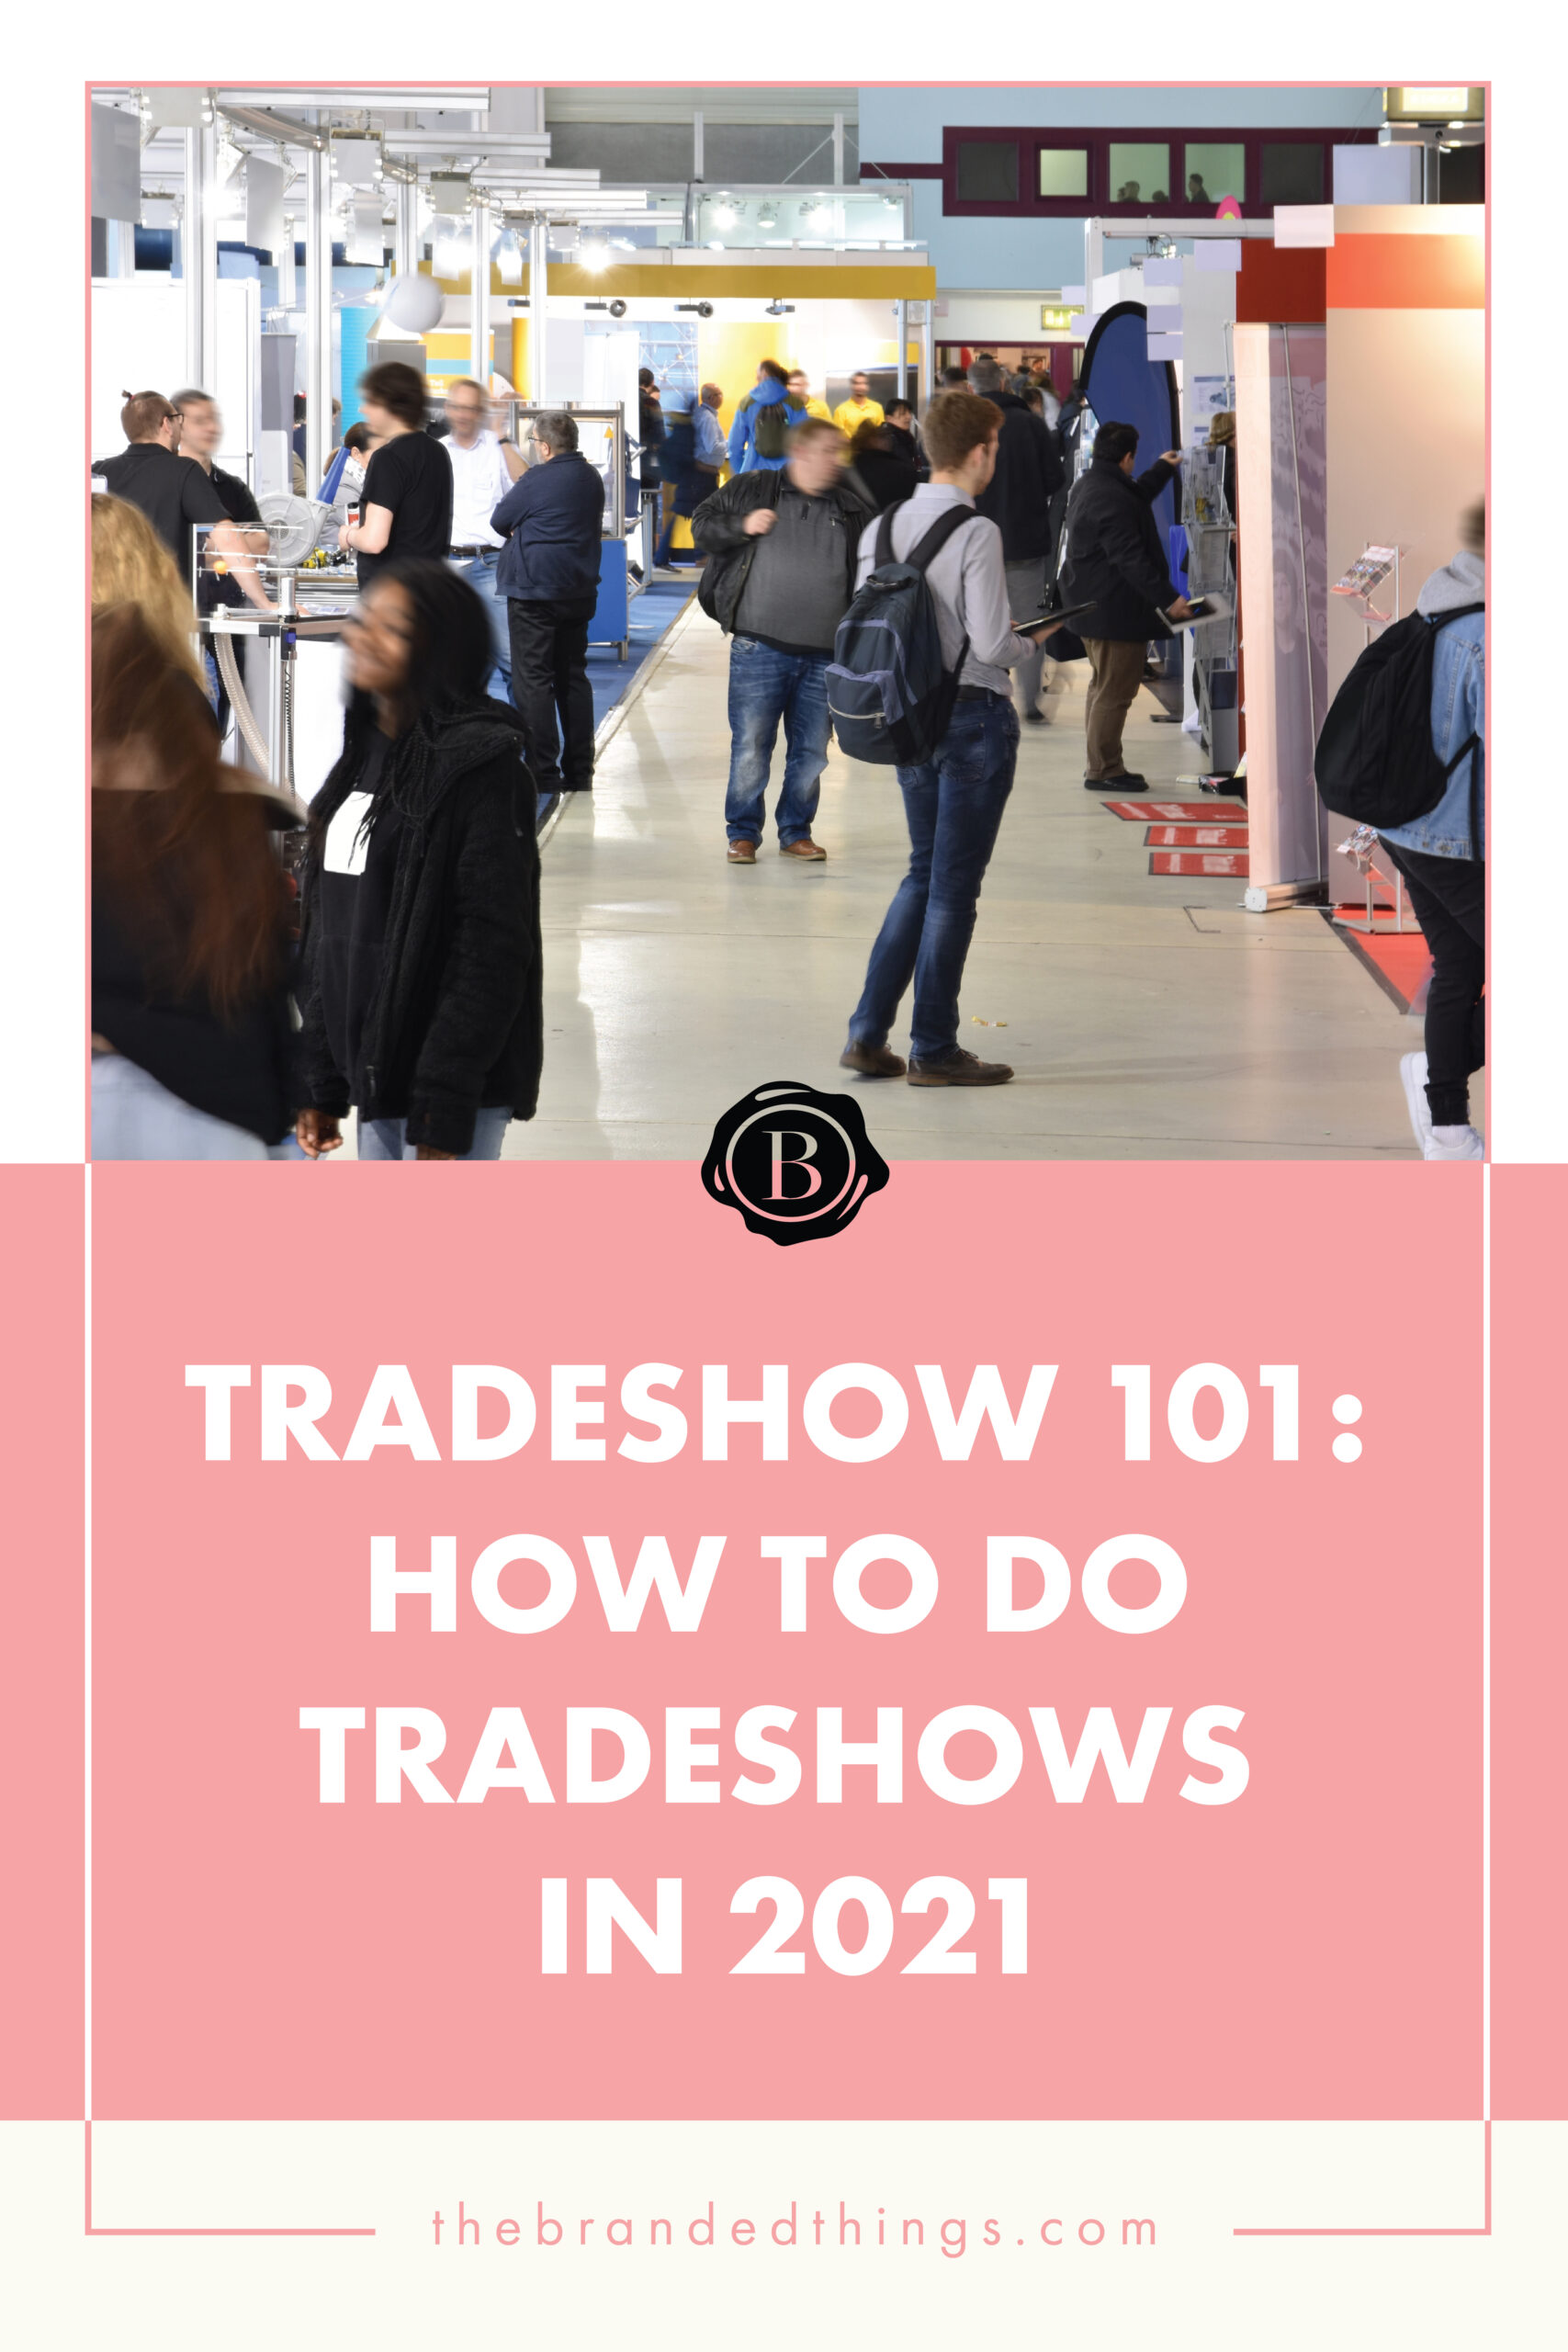 How to get ROI in Tradeshows in 2021